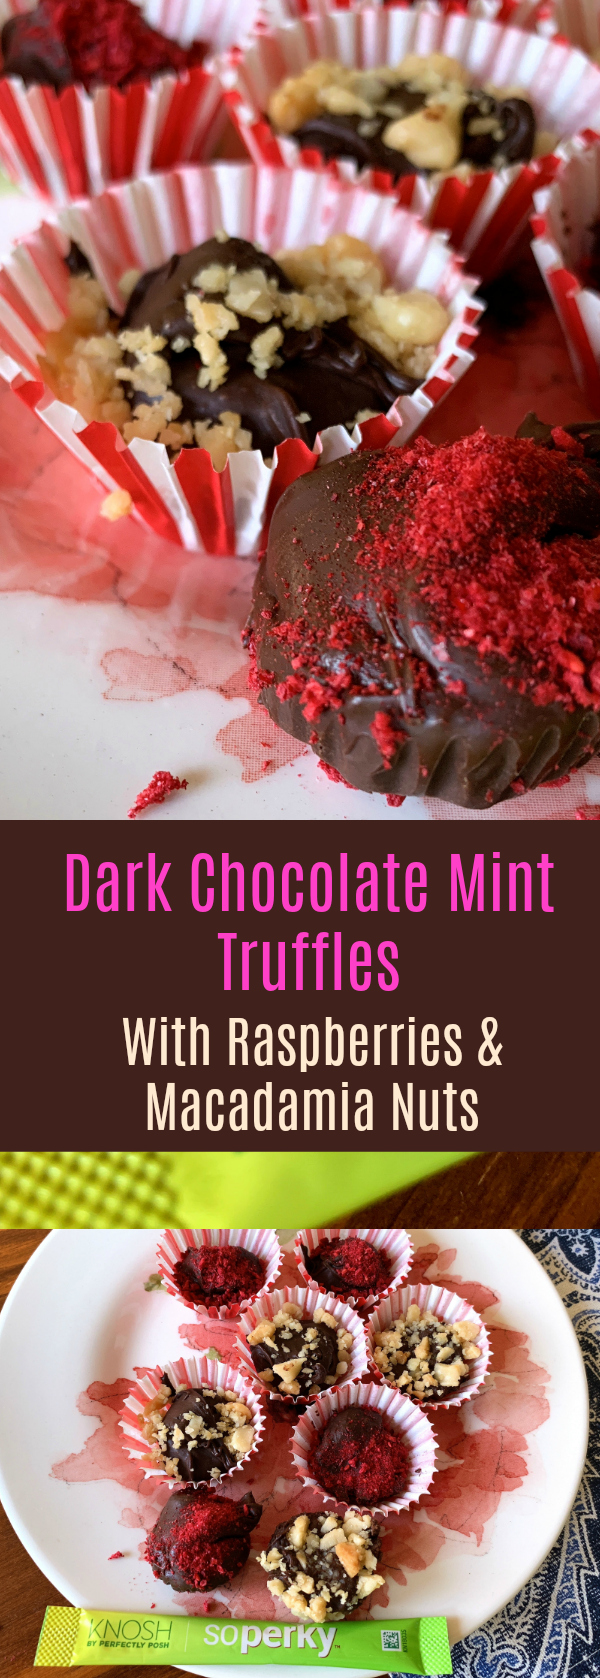 Dark Chocolate Mint Truffles with Raspberries and Macadamia Nuts